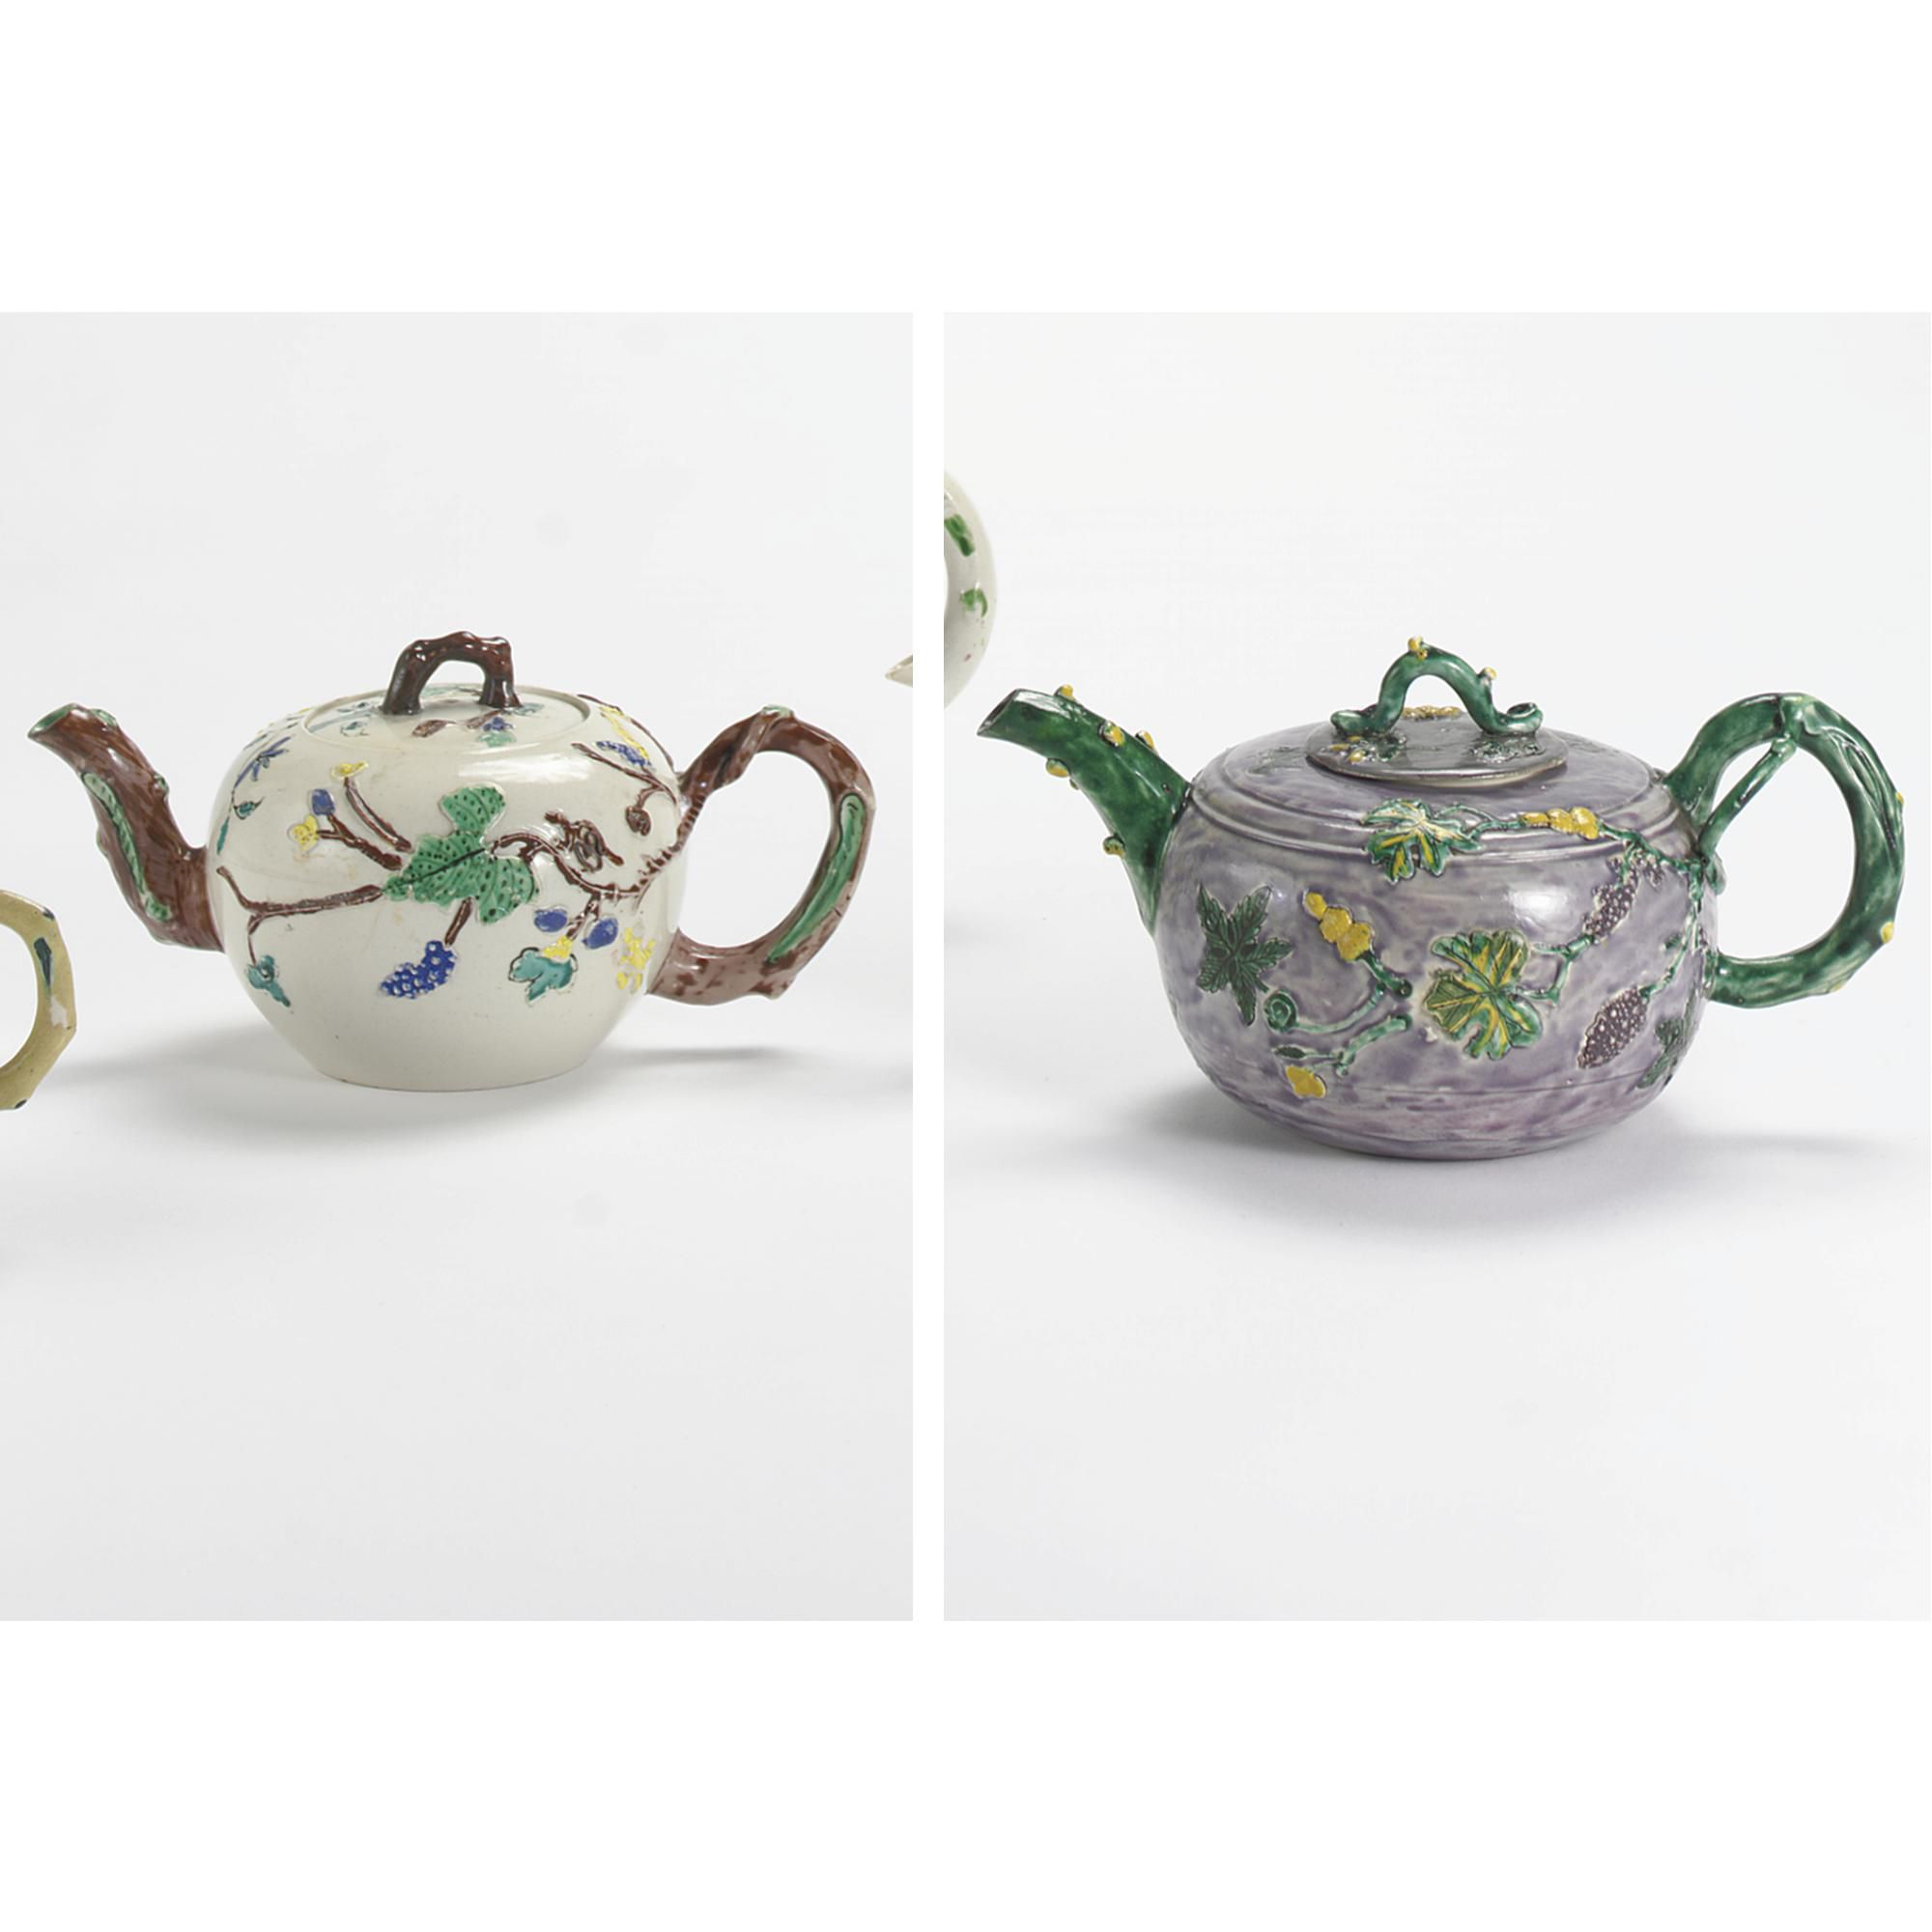 TWO STAFFORDSHIRE ENAMELLED SALT-GLAZED STONEWARE TEAPOTS AND COVERS CIRCA 1755